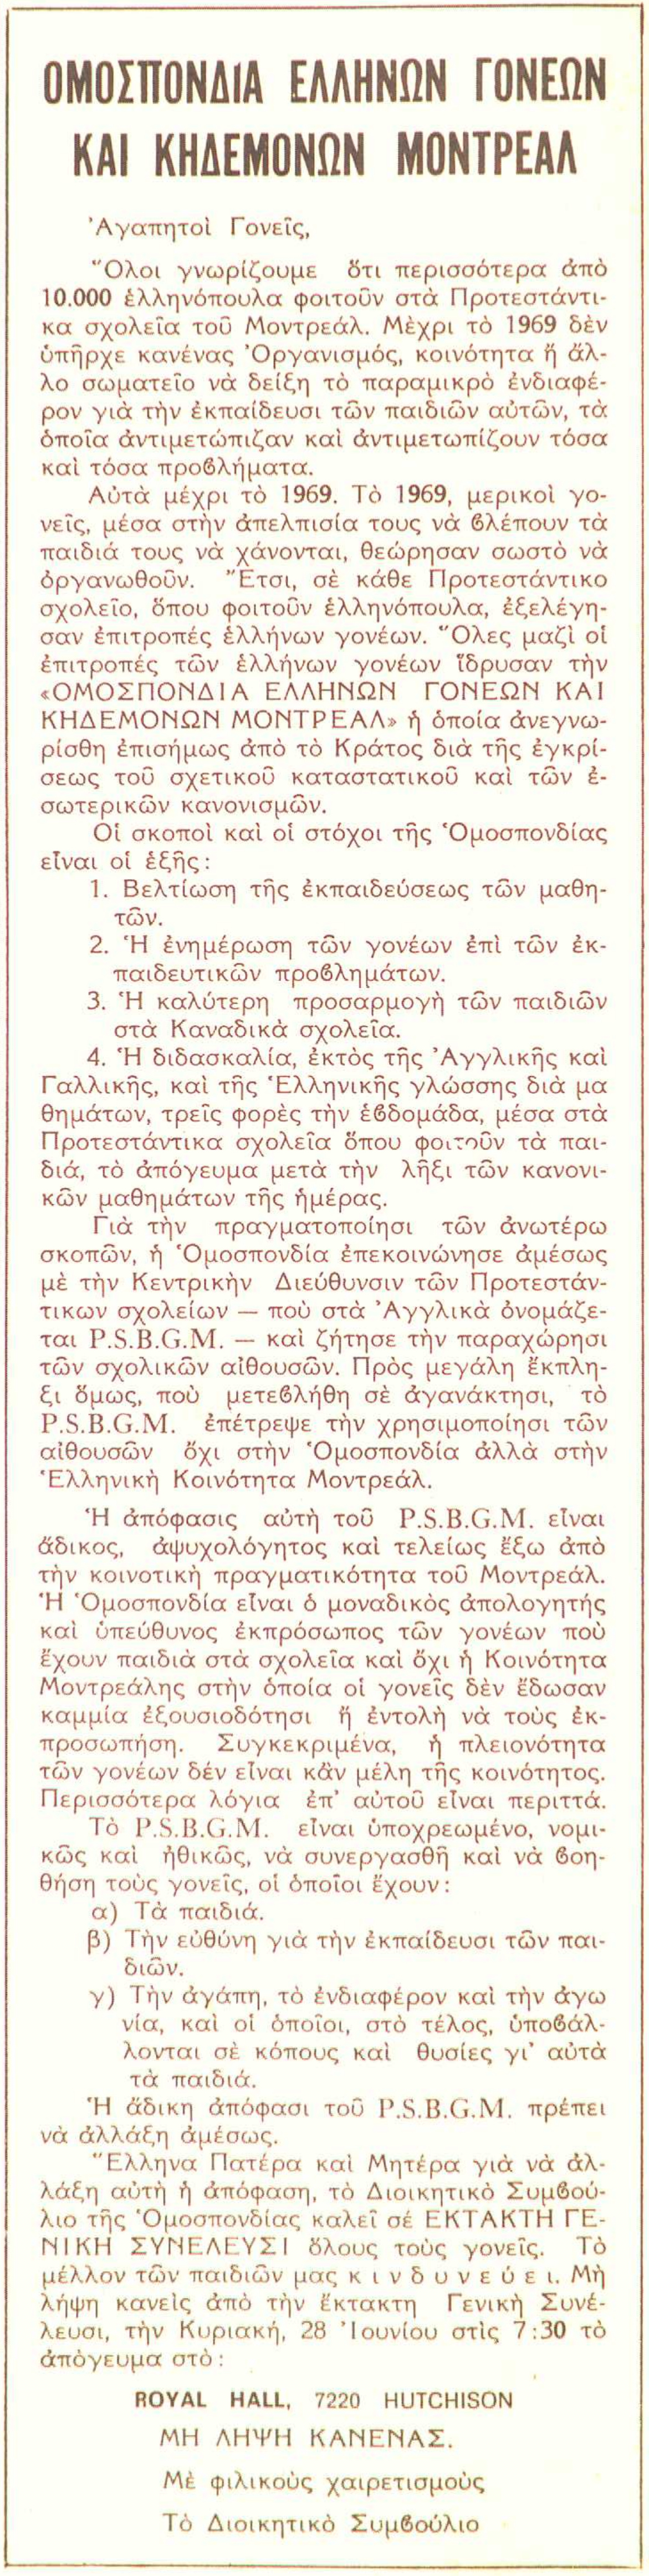 Federation of parents and guardians  Announcement of the parents and guardians federation for the teaching of Greek language in Protestant schools. Greek Canadian Tribune, 26/06/70, p. 3.   Source: Greek-canadian press